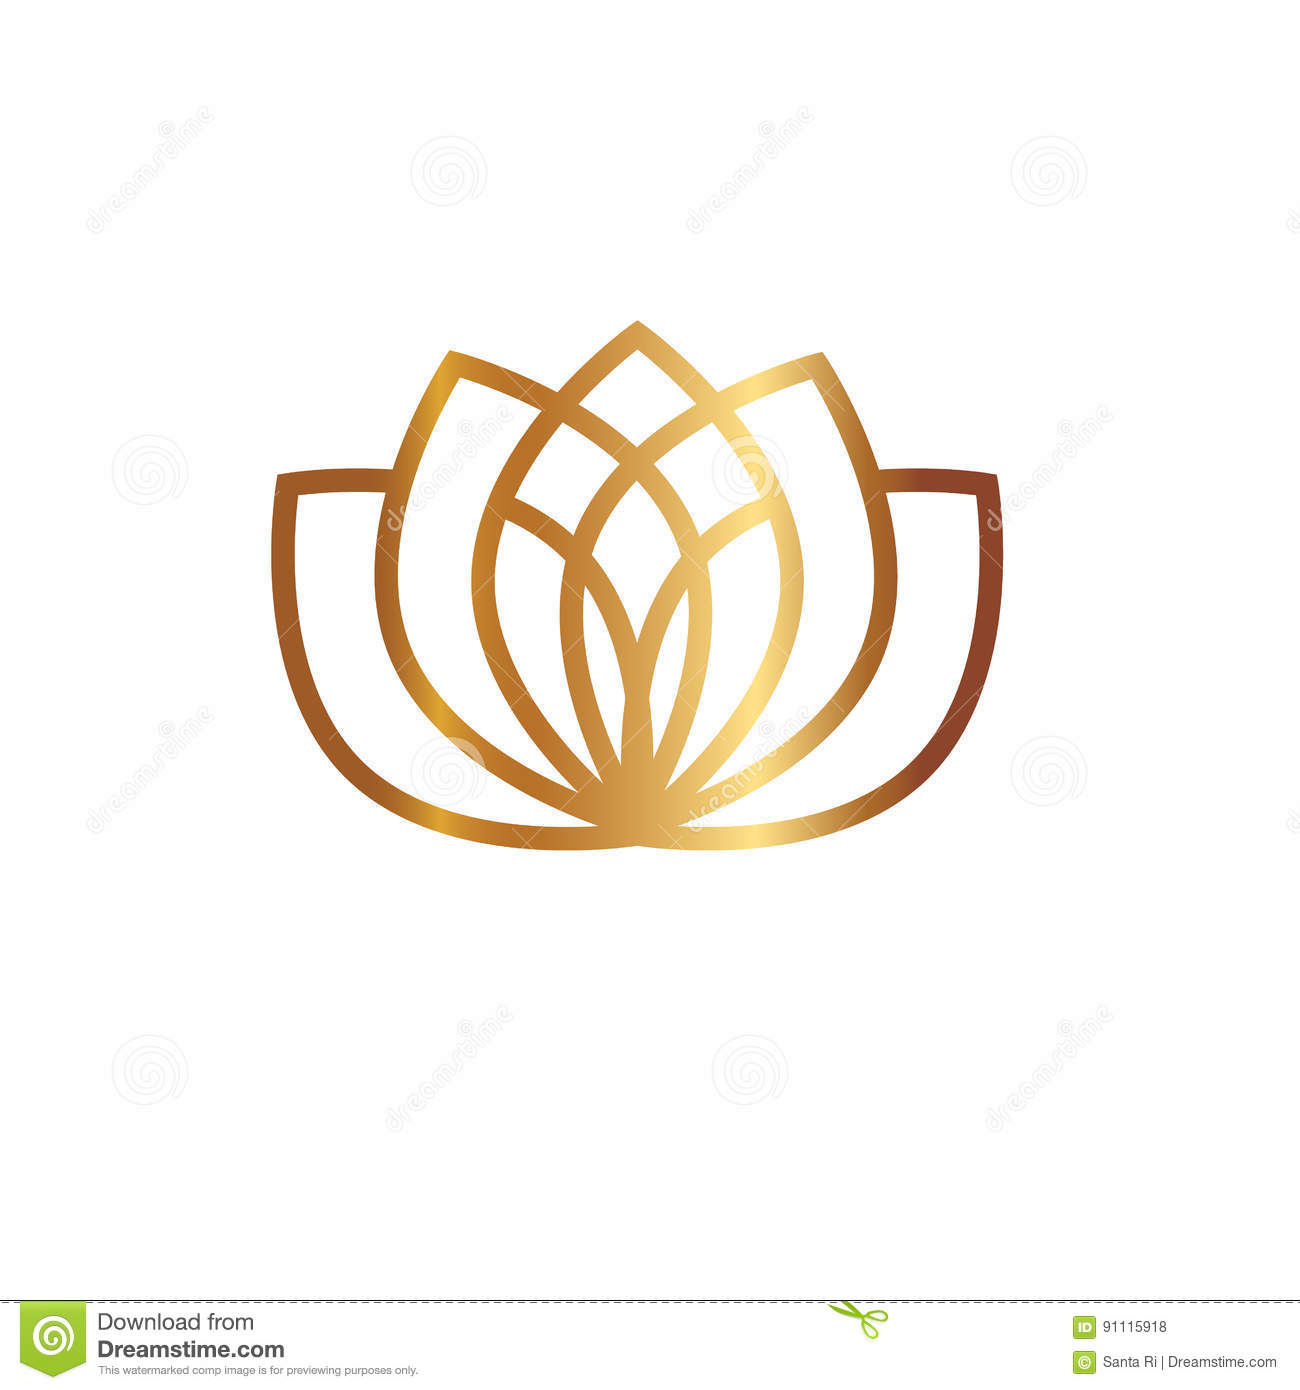 Lotus Flower Logo Stock Vector Illustration Of Boutoque 91115918